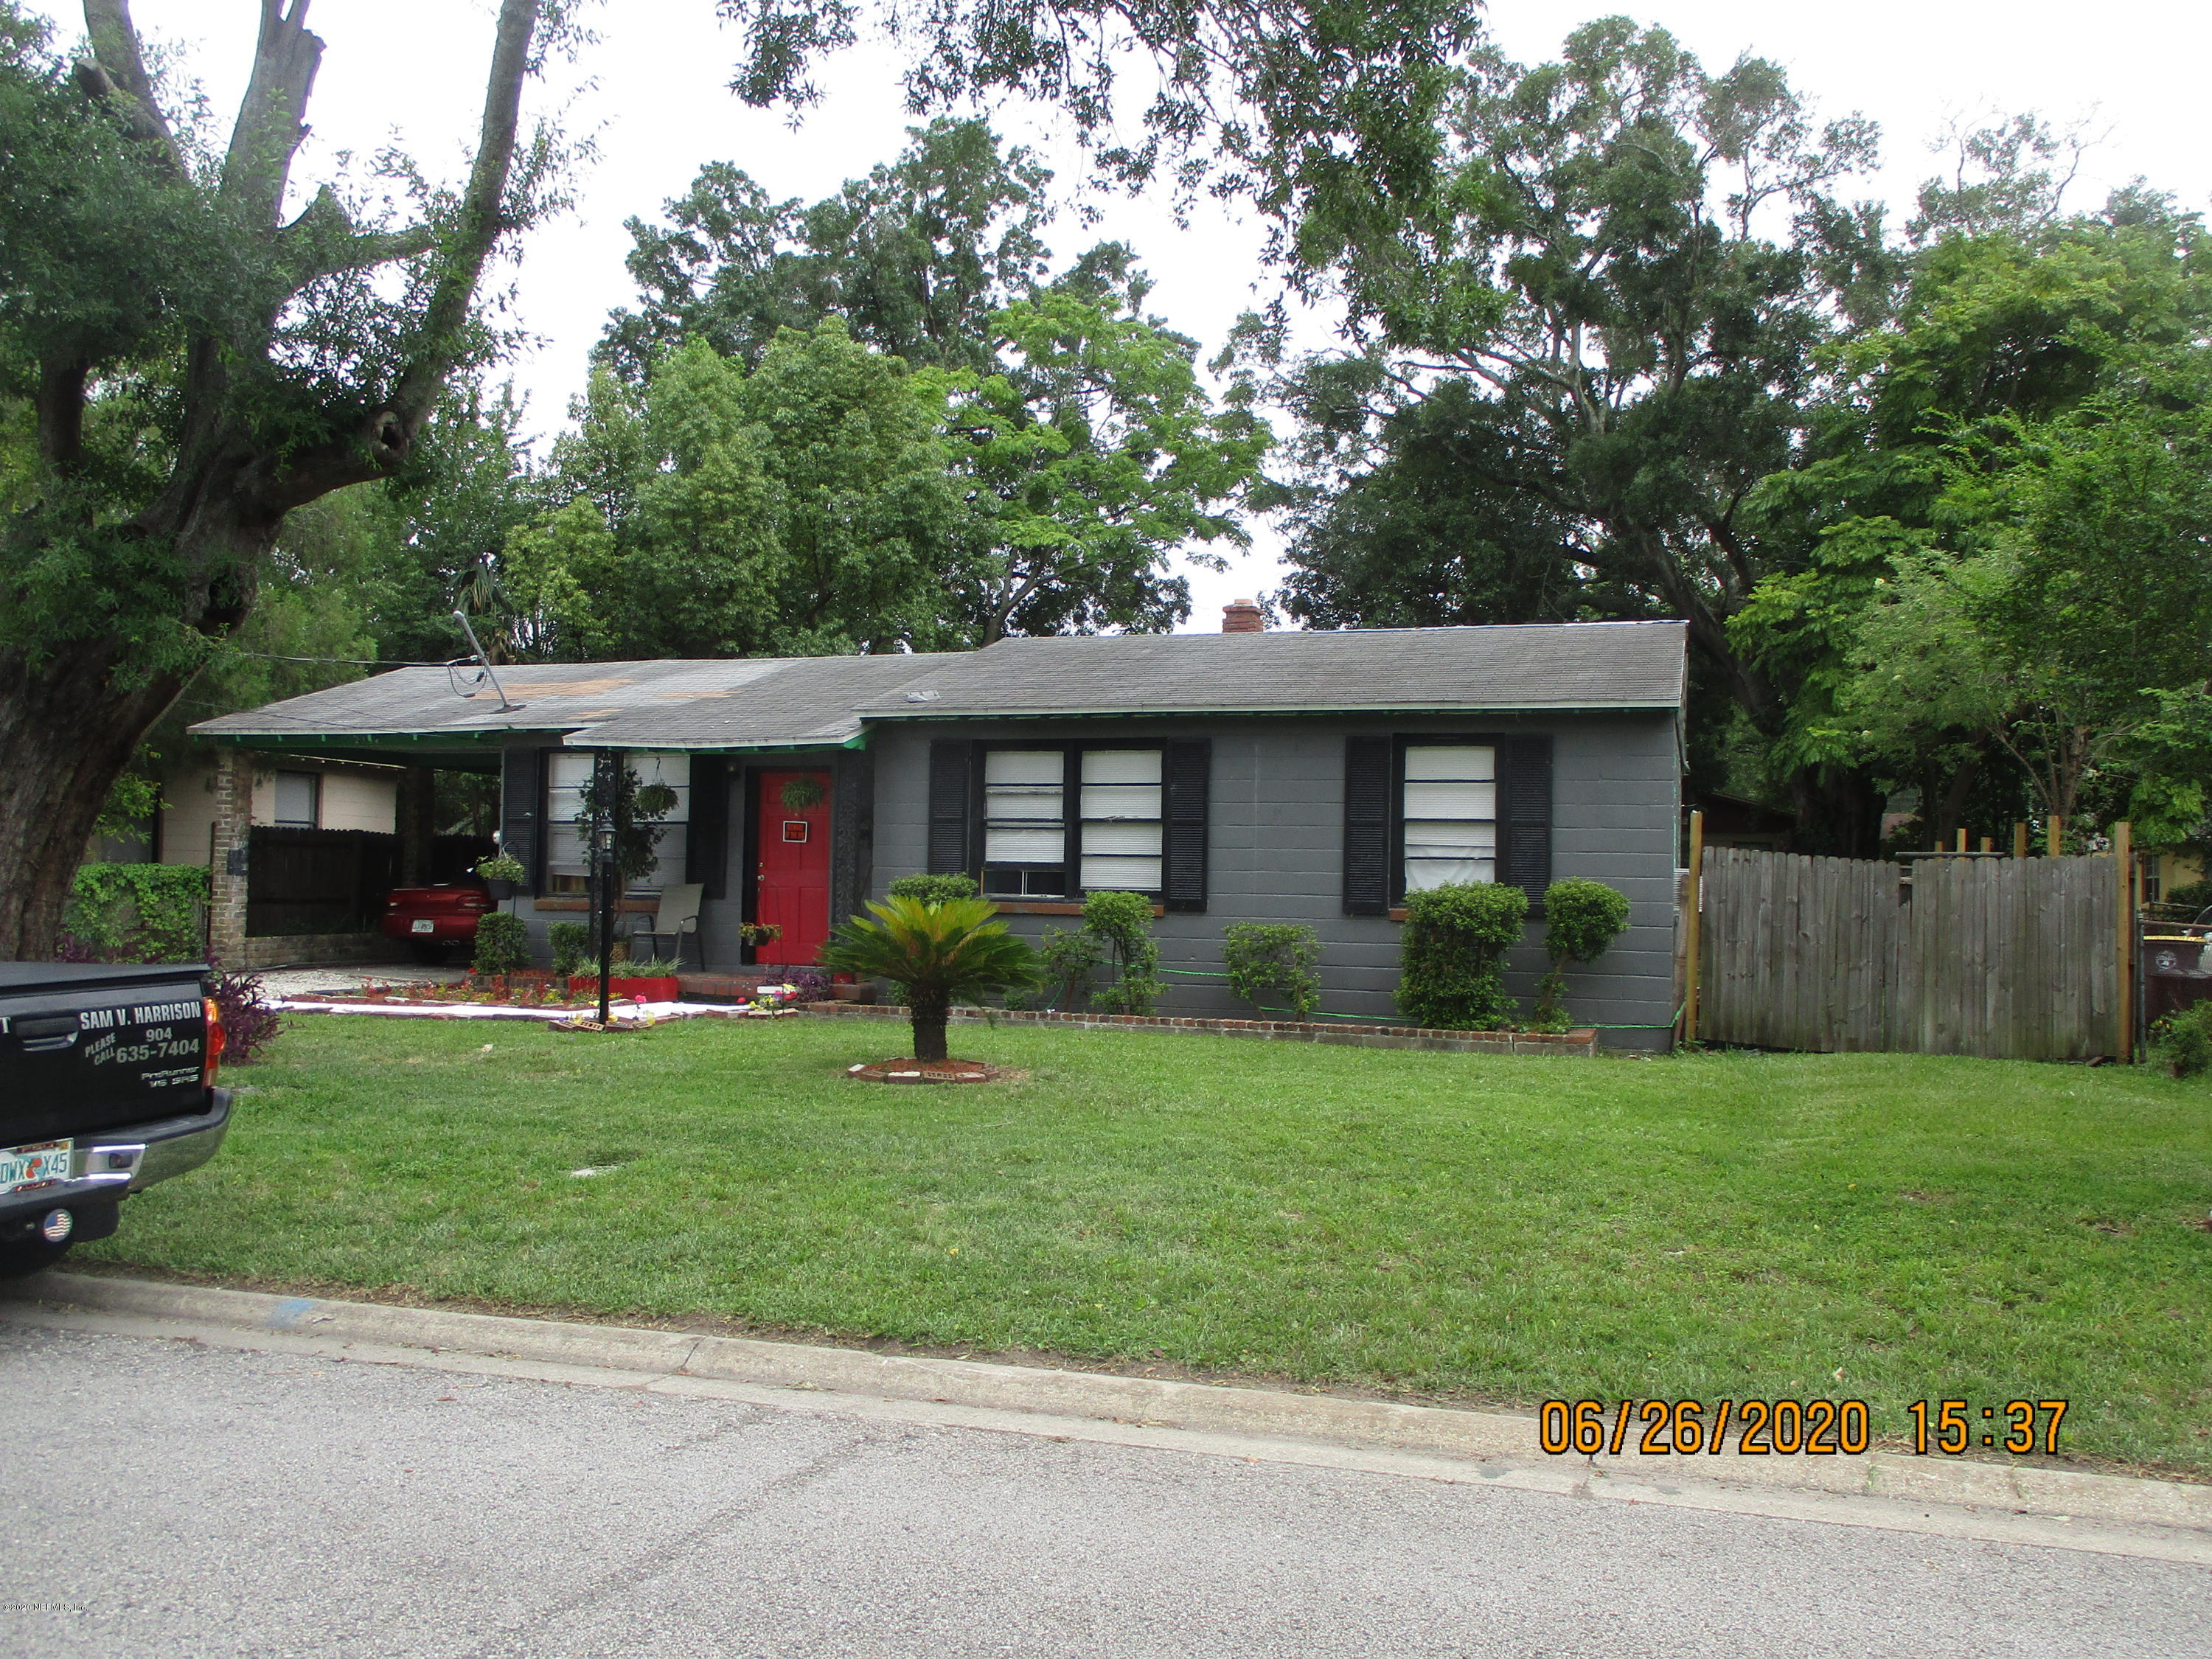 2154 16TH, JACKSONVILLE, FLORIDA 32209, 3 Bedrooms Bedrooms, ,1 BathroomBathrooms,Rental,For Rent,16TH,1082747